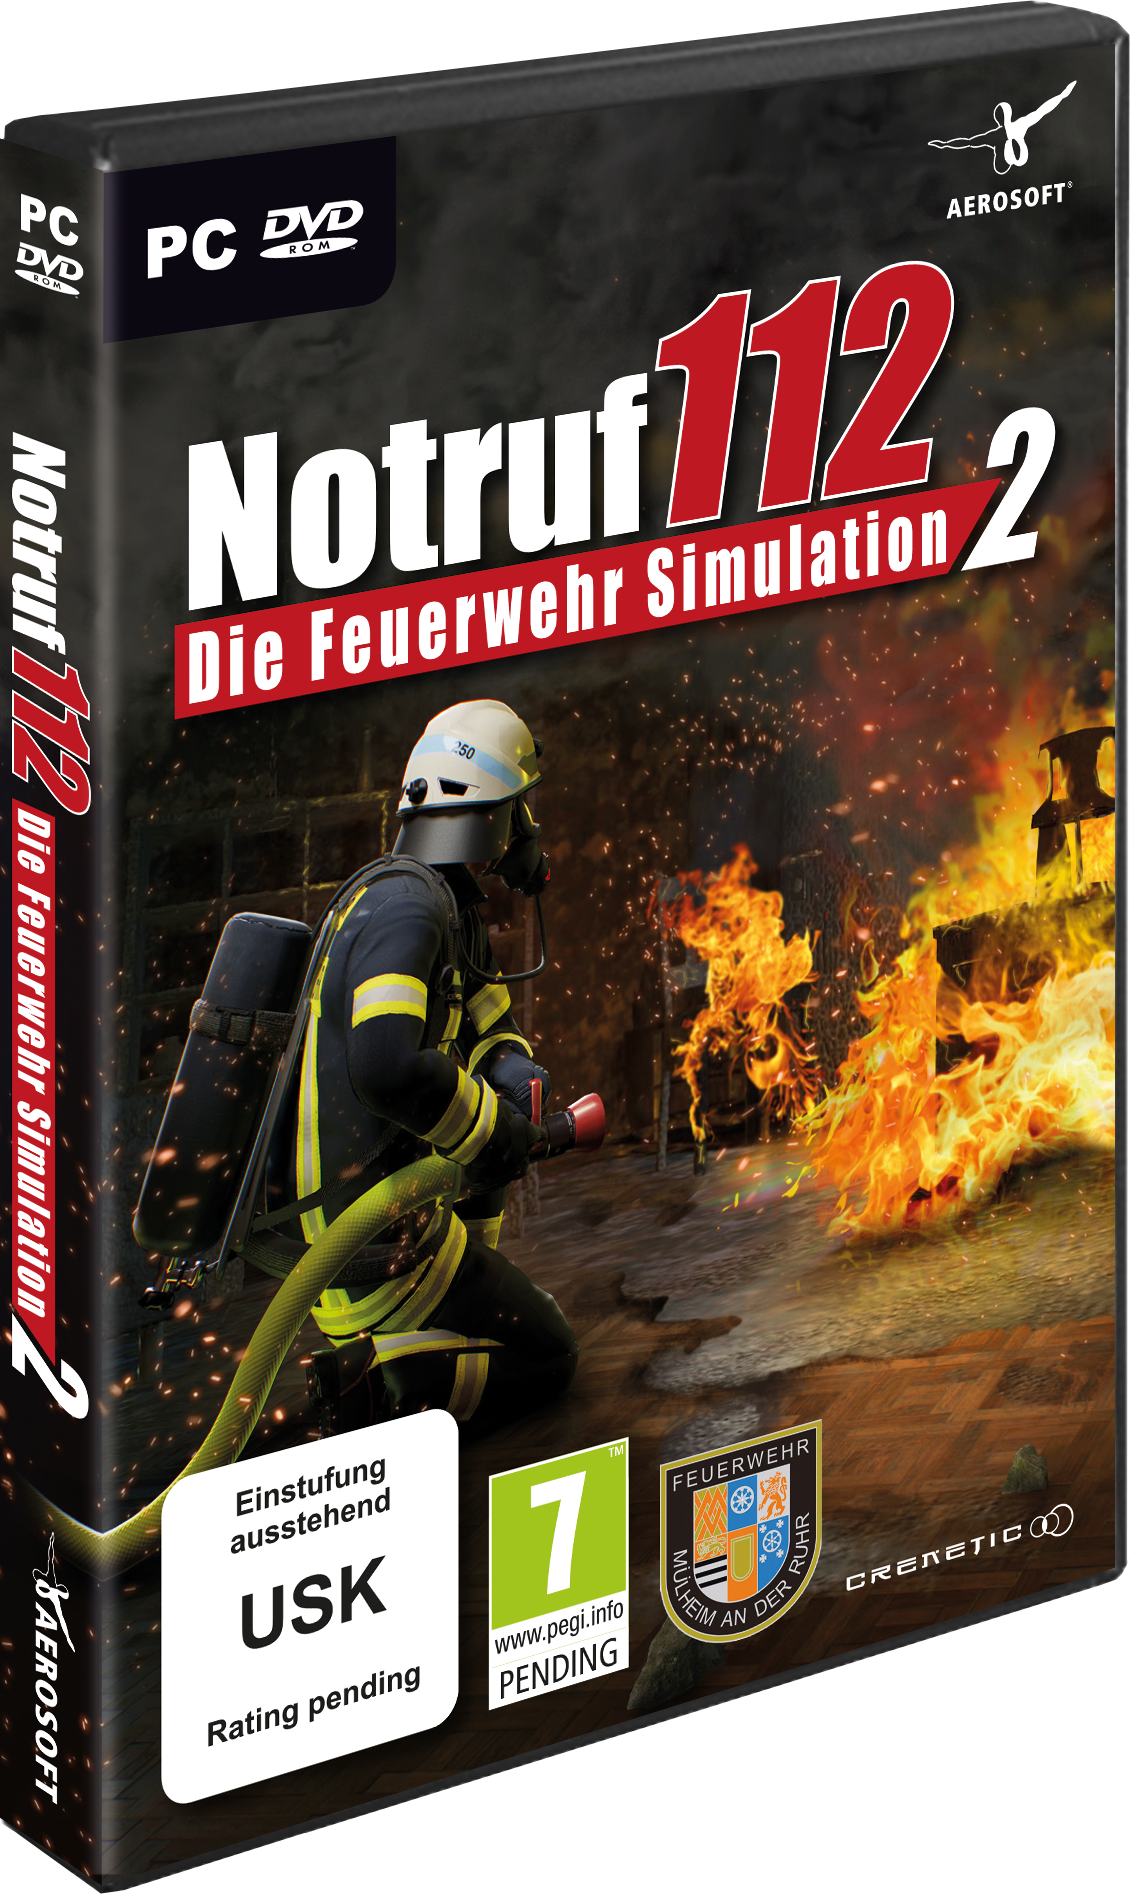 Packshot Emergency Call 112 - The Fire Fighting Simulation 2